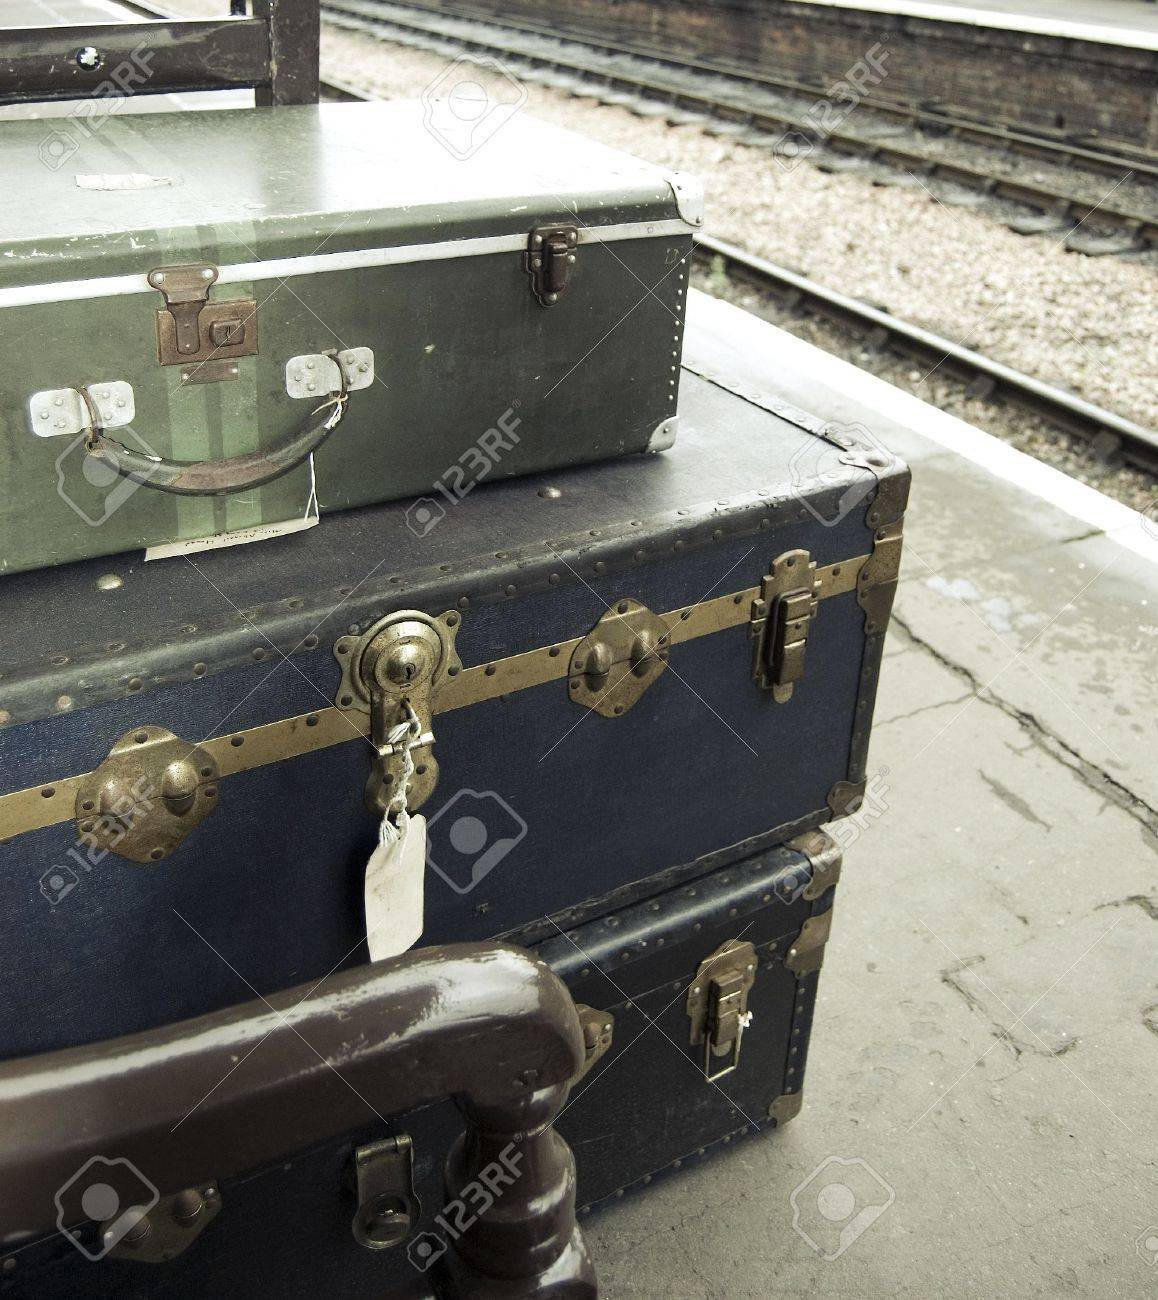 Old-fashioned personal baggage stacked up on train platform - 5743746